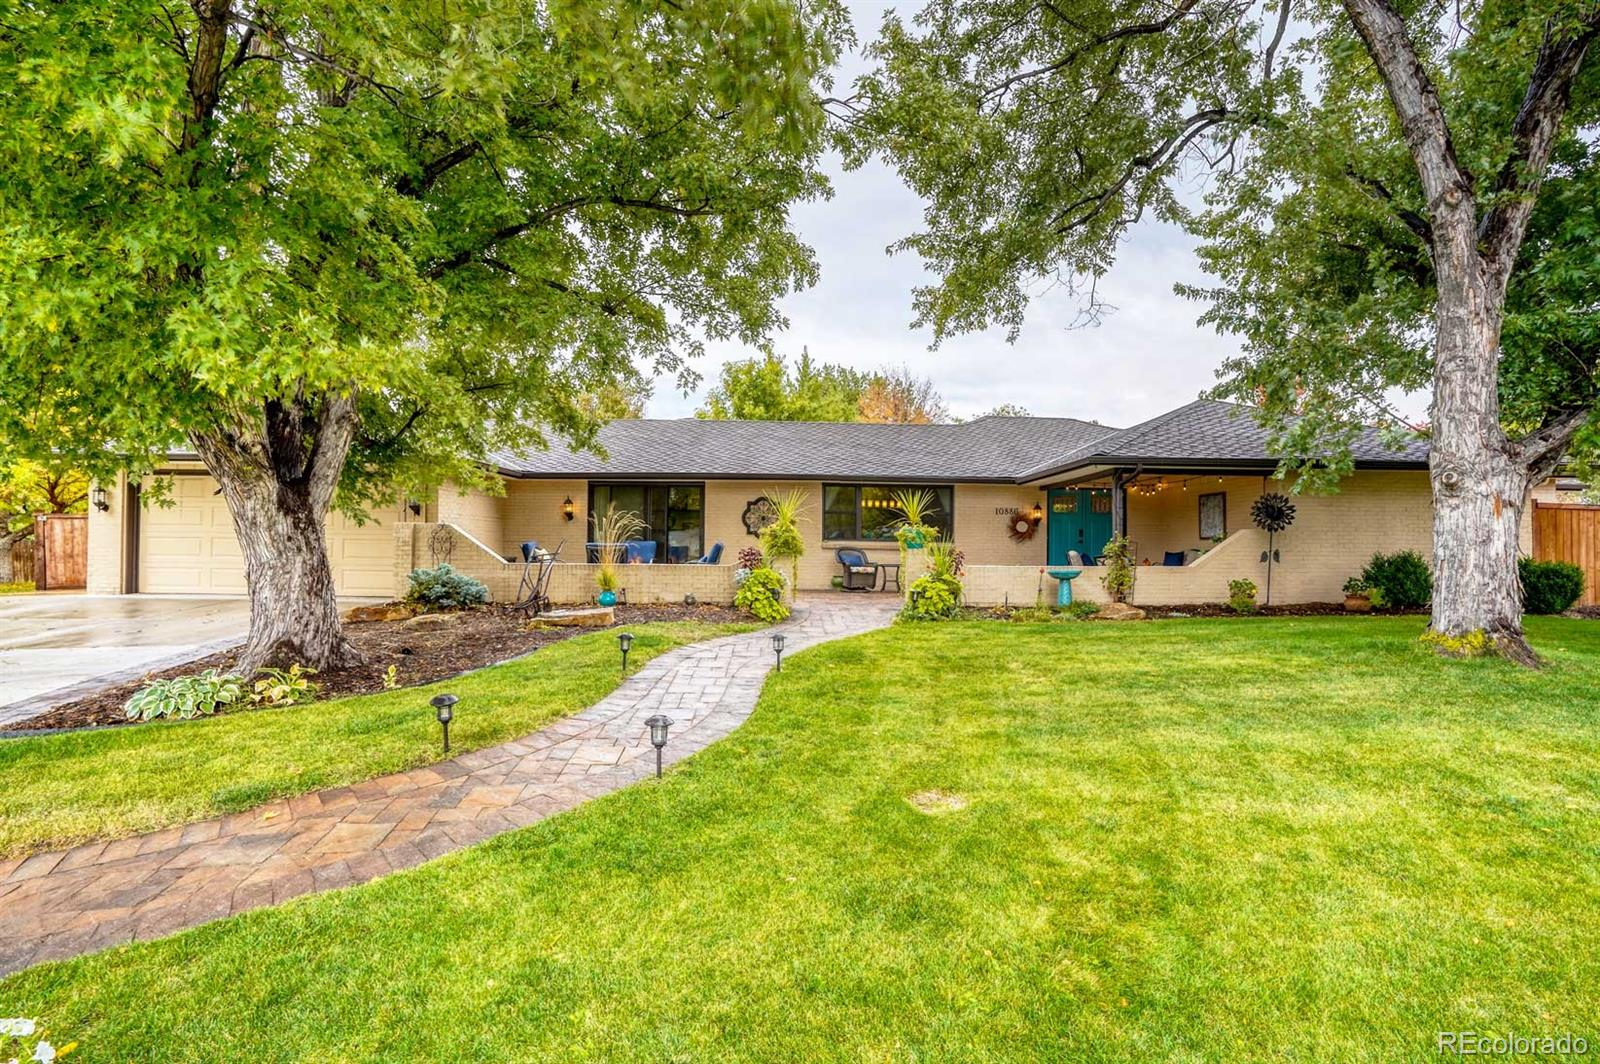 10886 W 31st Place, Lakewood, CO 80215